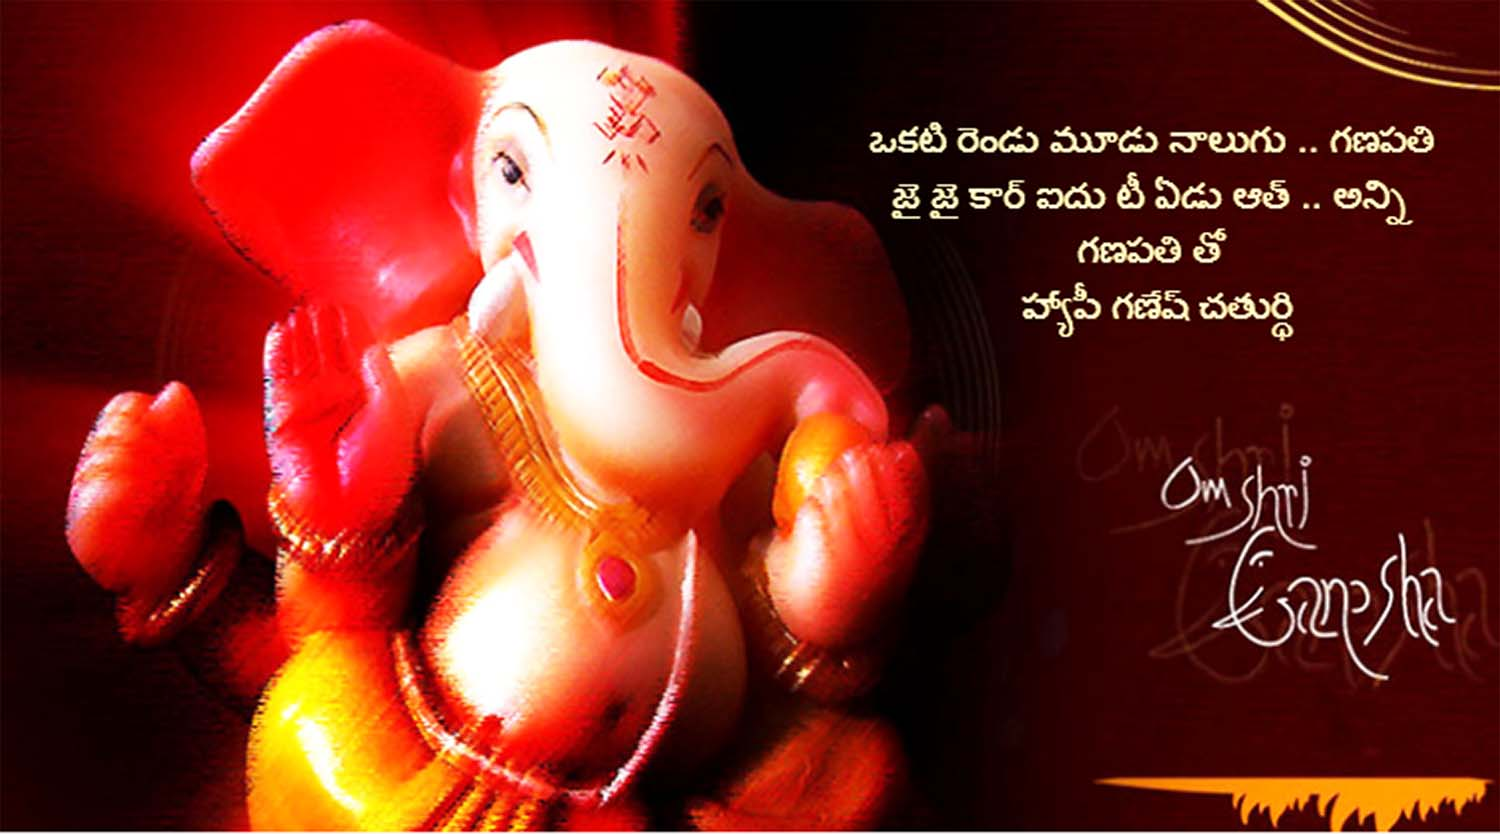 Vinayaka chaturthi wishes in telugu